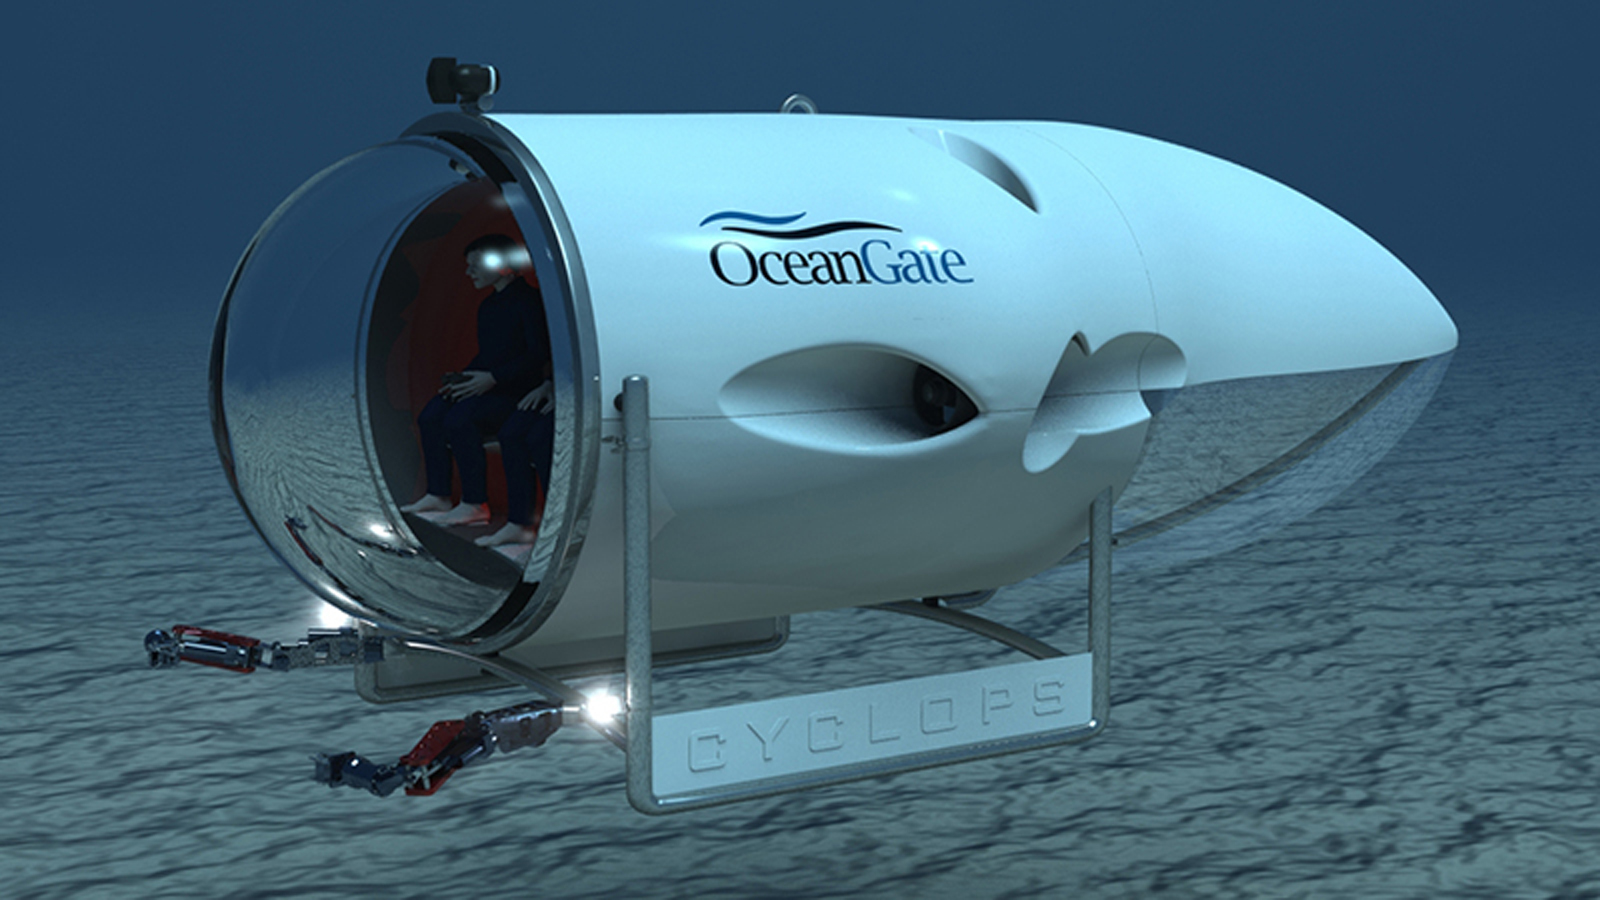 This 5-Man Mini-Sub Brings the Deep Ocean's Treasures Within Reach